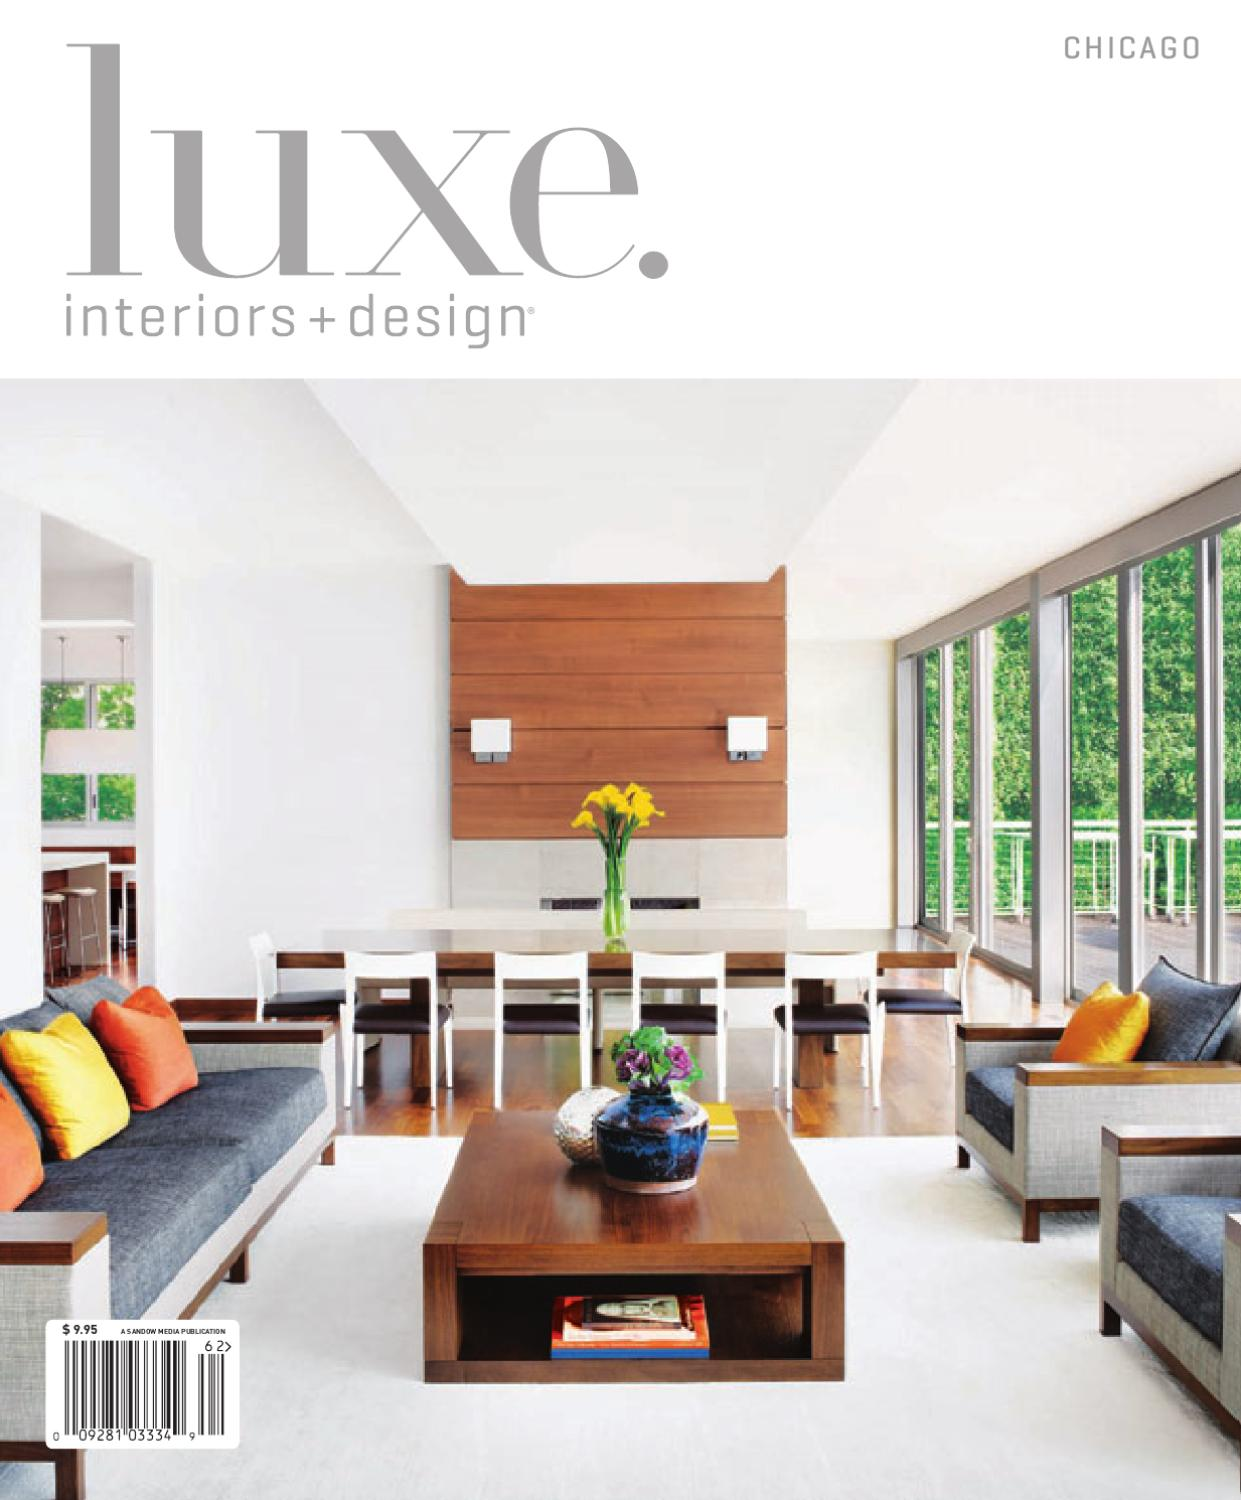 LUXE Interior + Design Chicago By Sandow Media